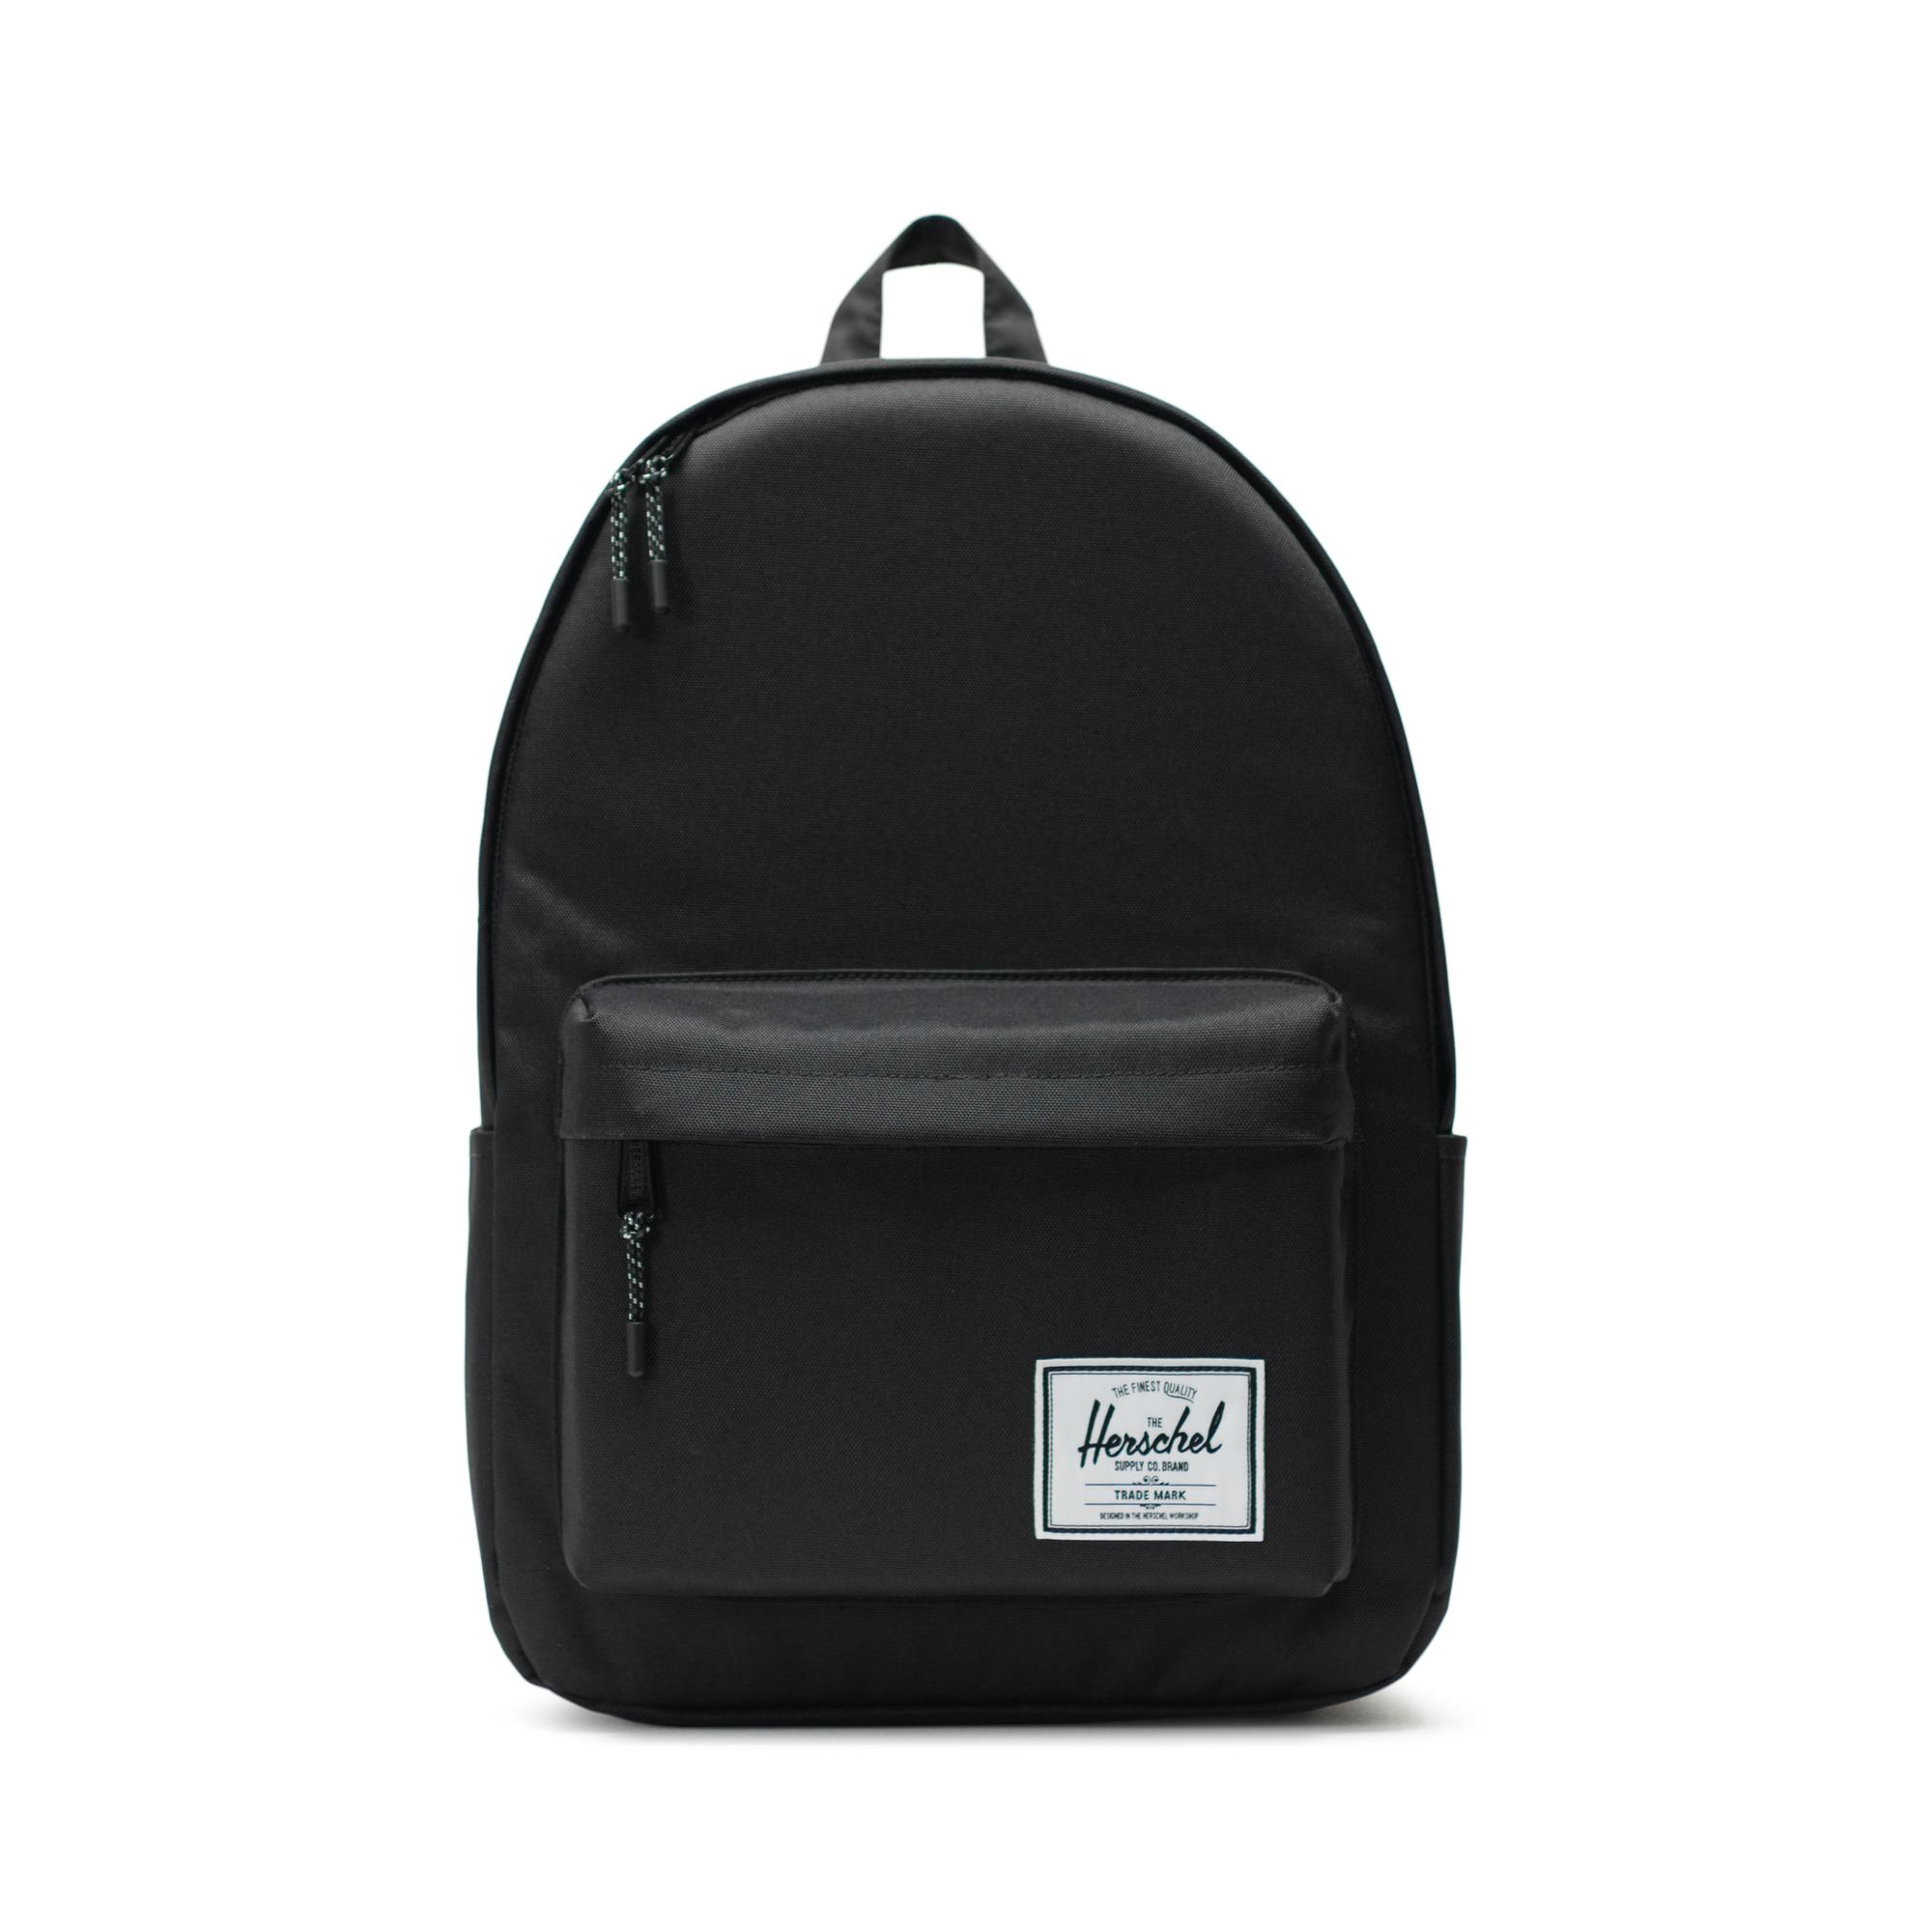 Herschel Classic X-large Backpack Navy Blau Novel In Design;